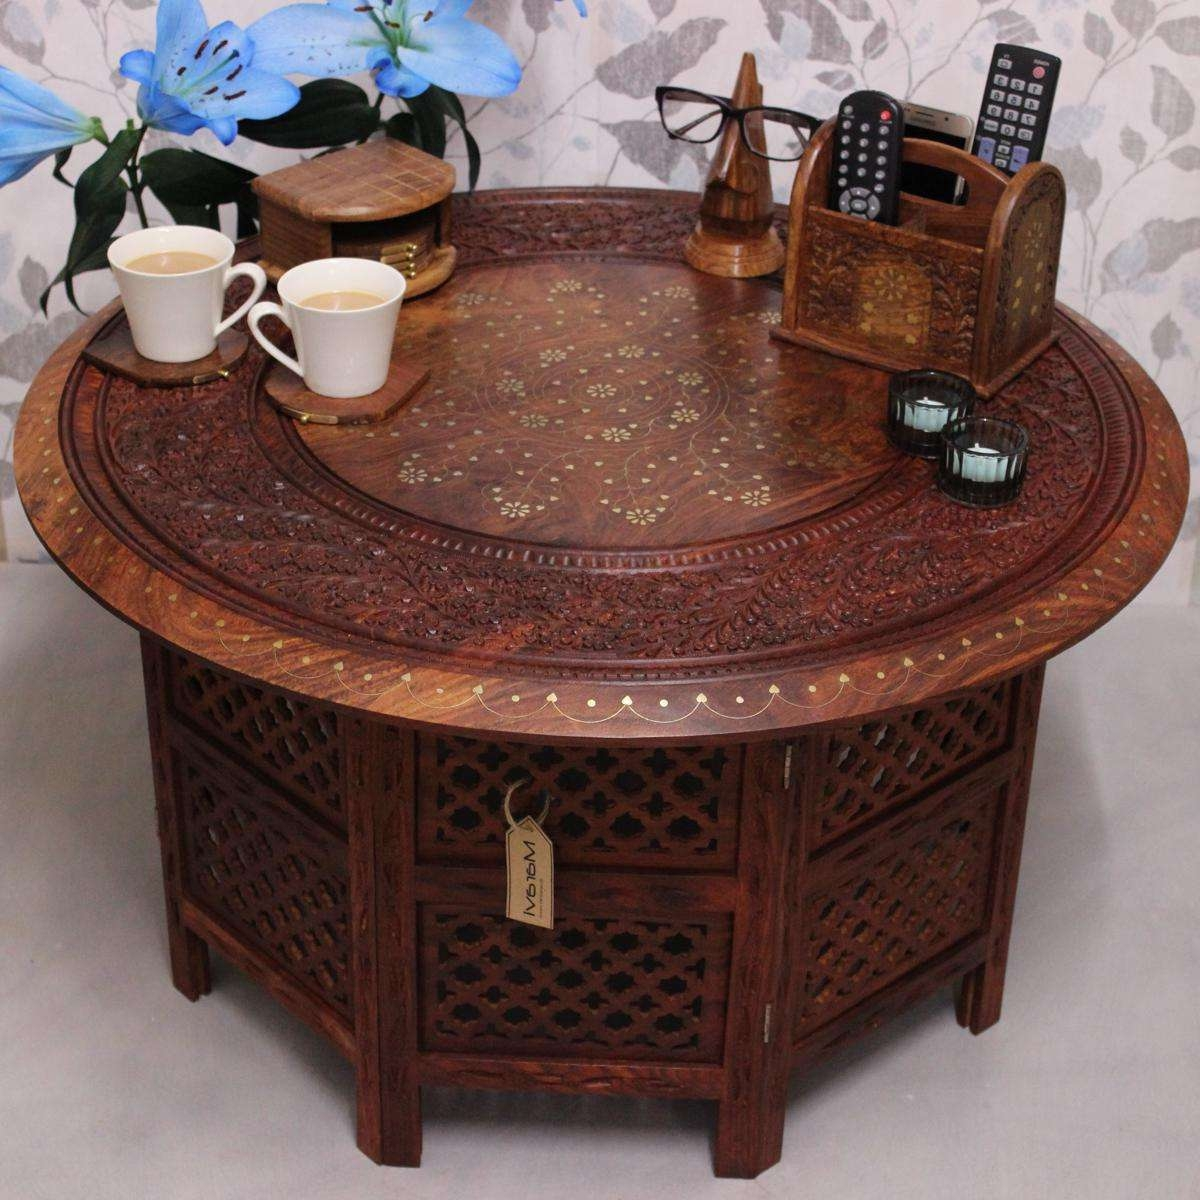 Preferred Indian Coffee Tables Pertaining To Karakoram Maravi Large Round Coffee Table Brown Solid Wooden (View 15 of 20)